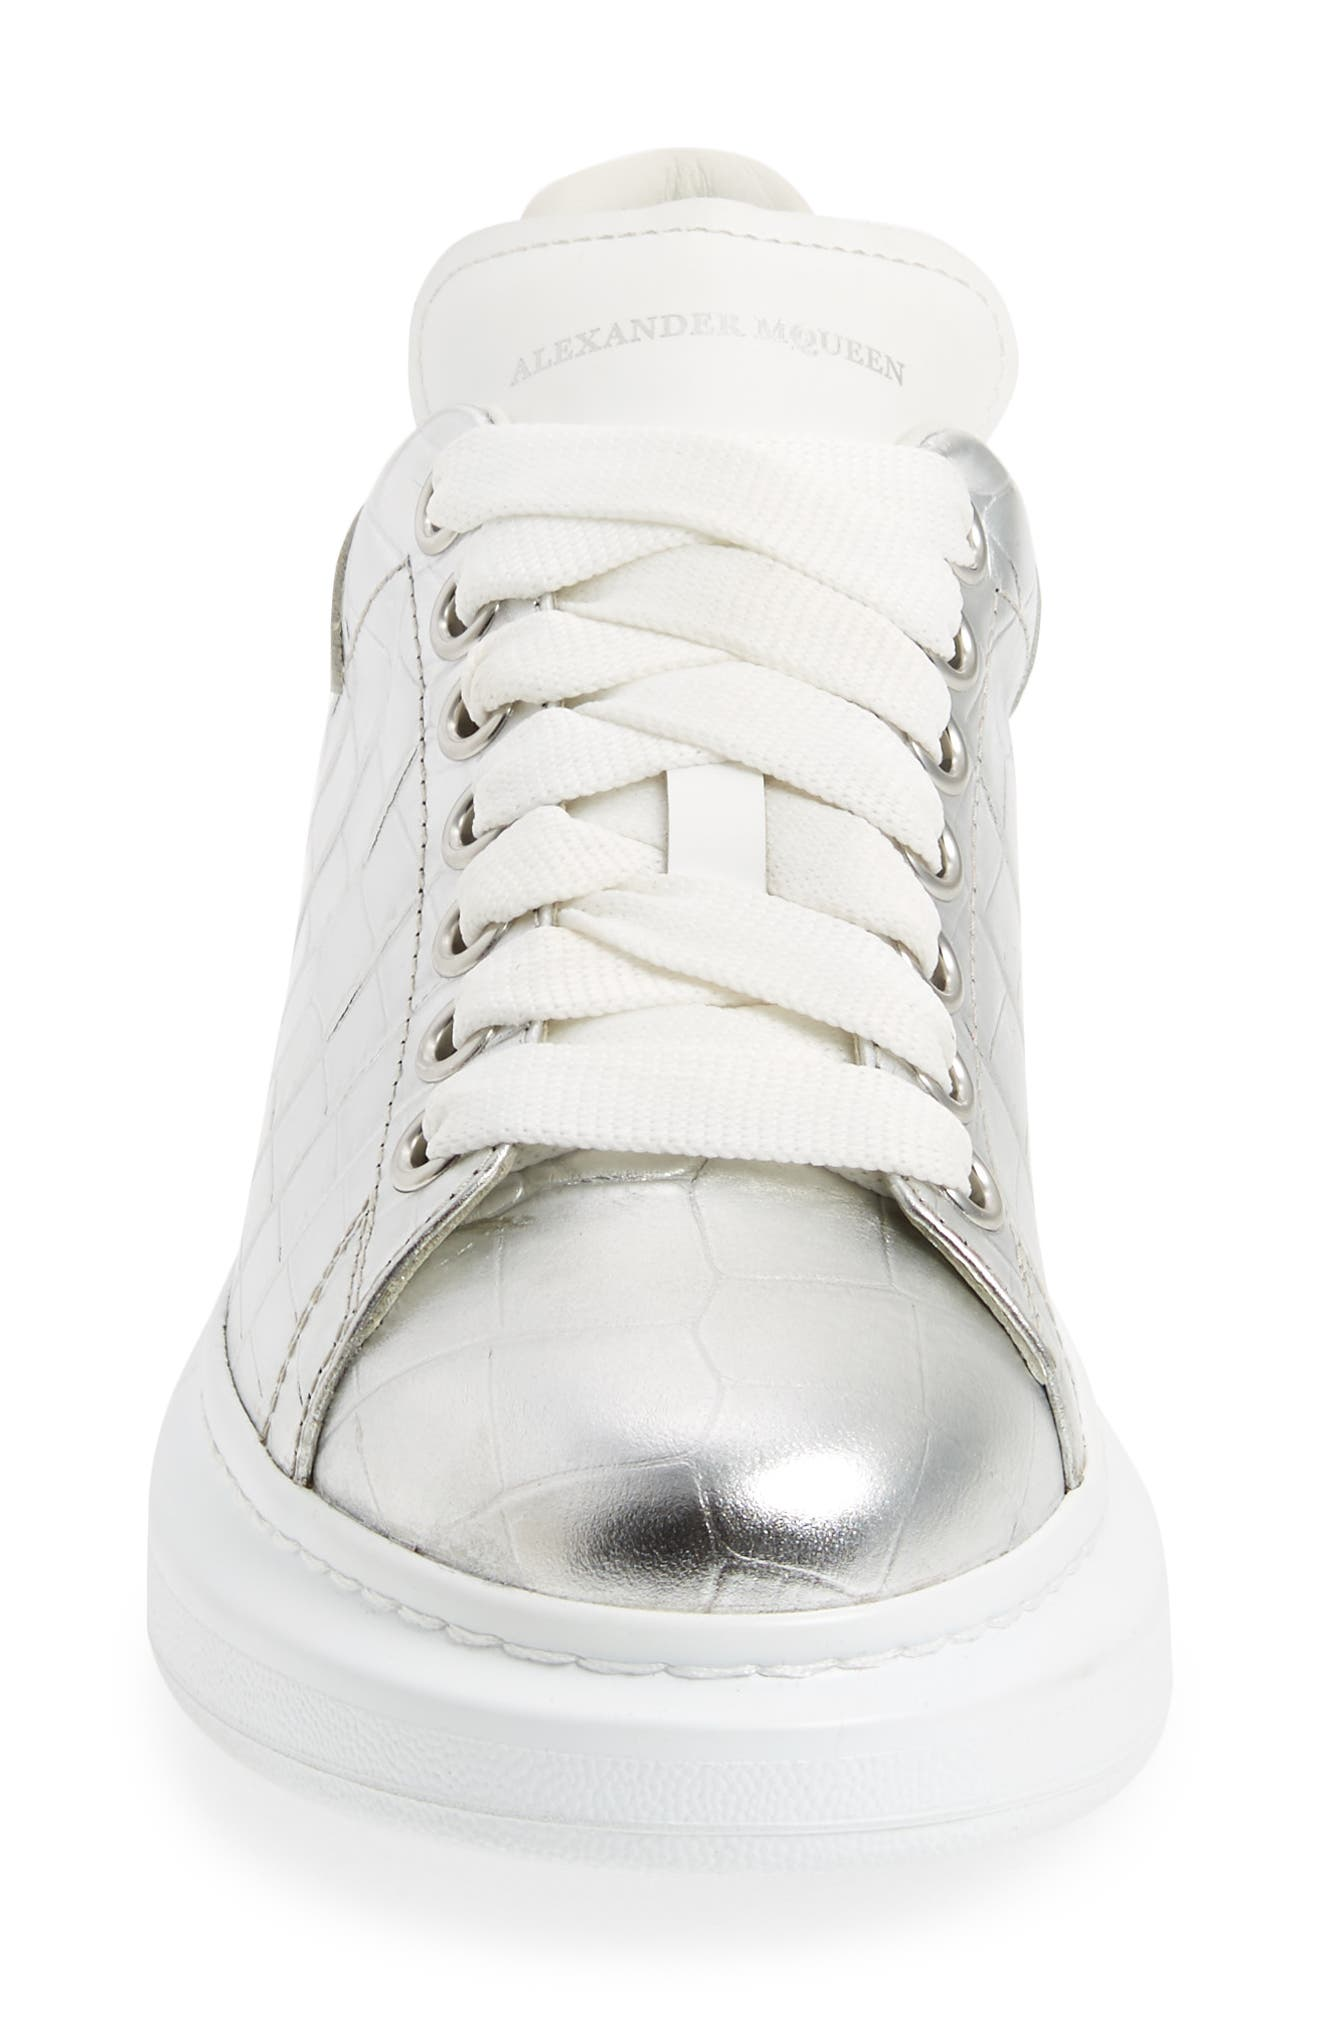 Croc Embossed Lace-Up Sneaker,                             Alternate thumbnail 4, color,                             040